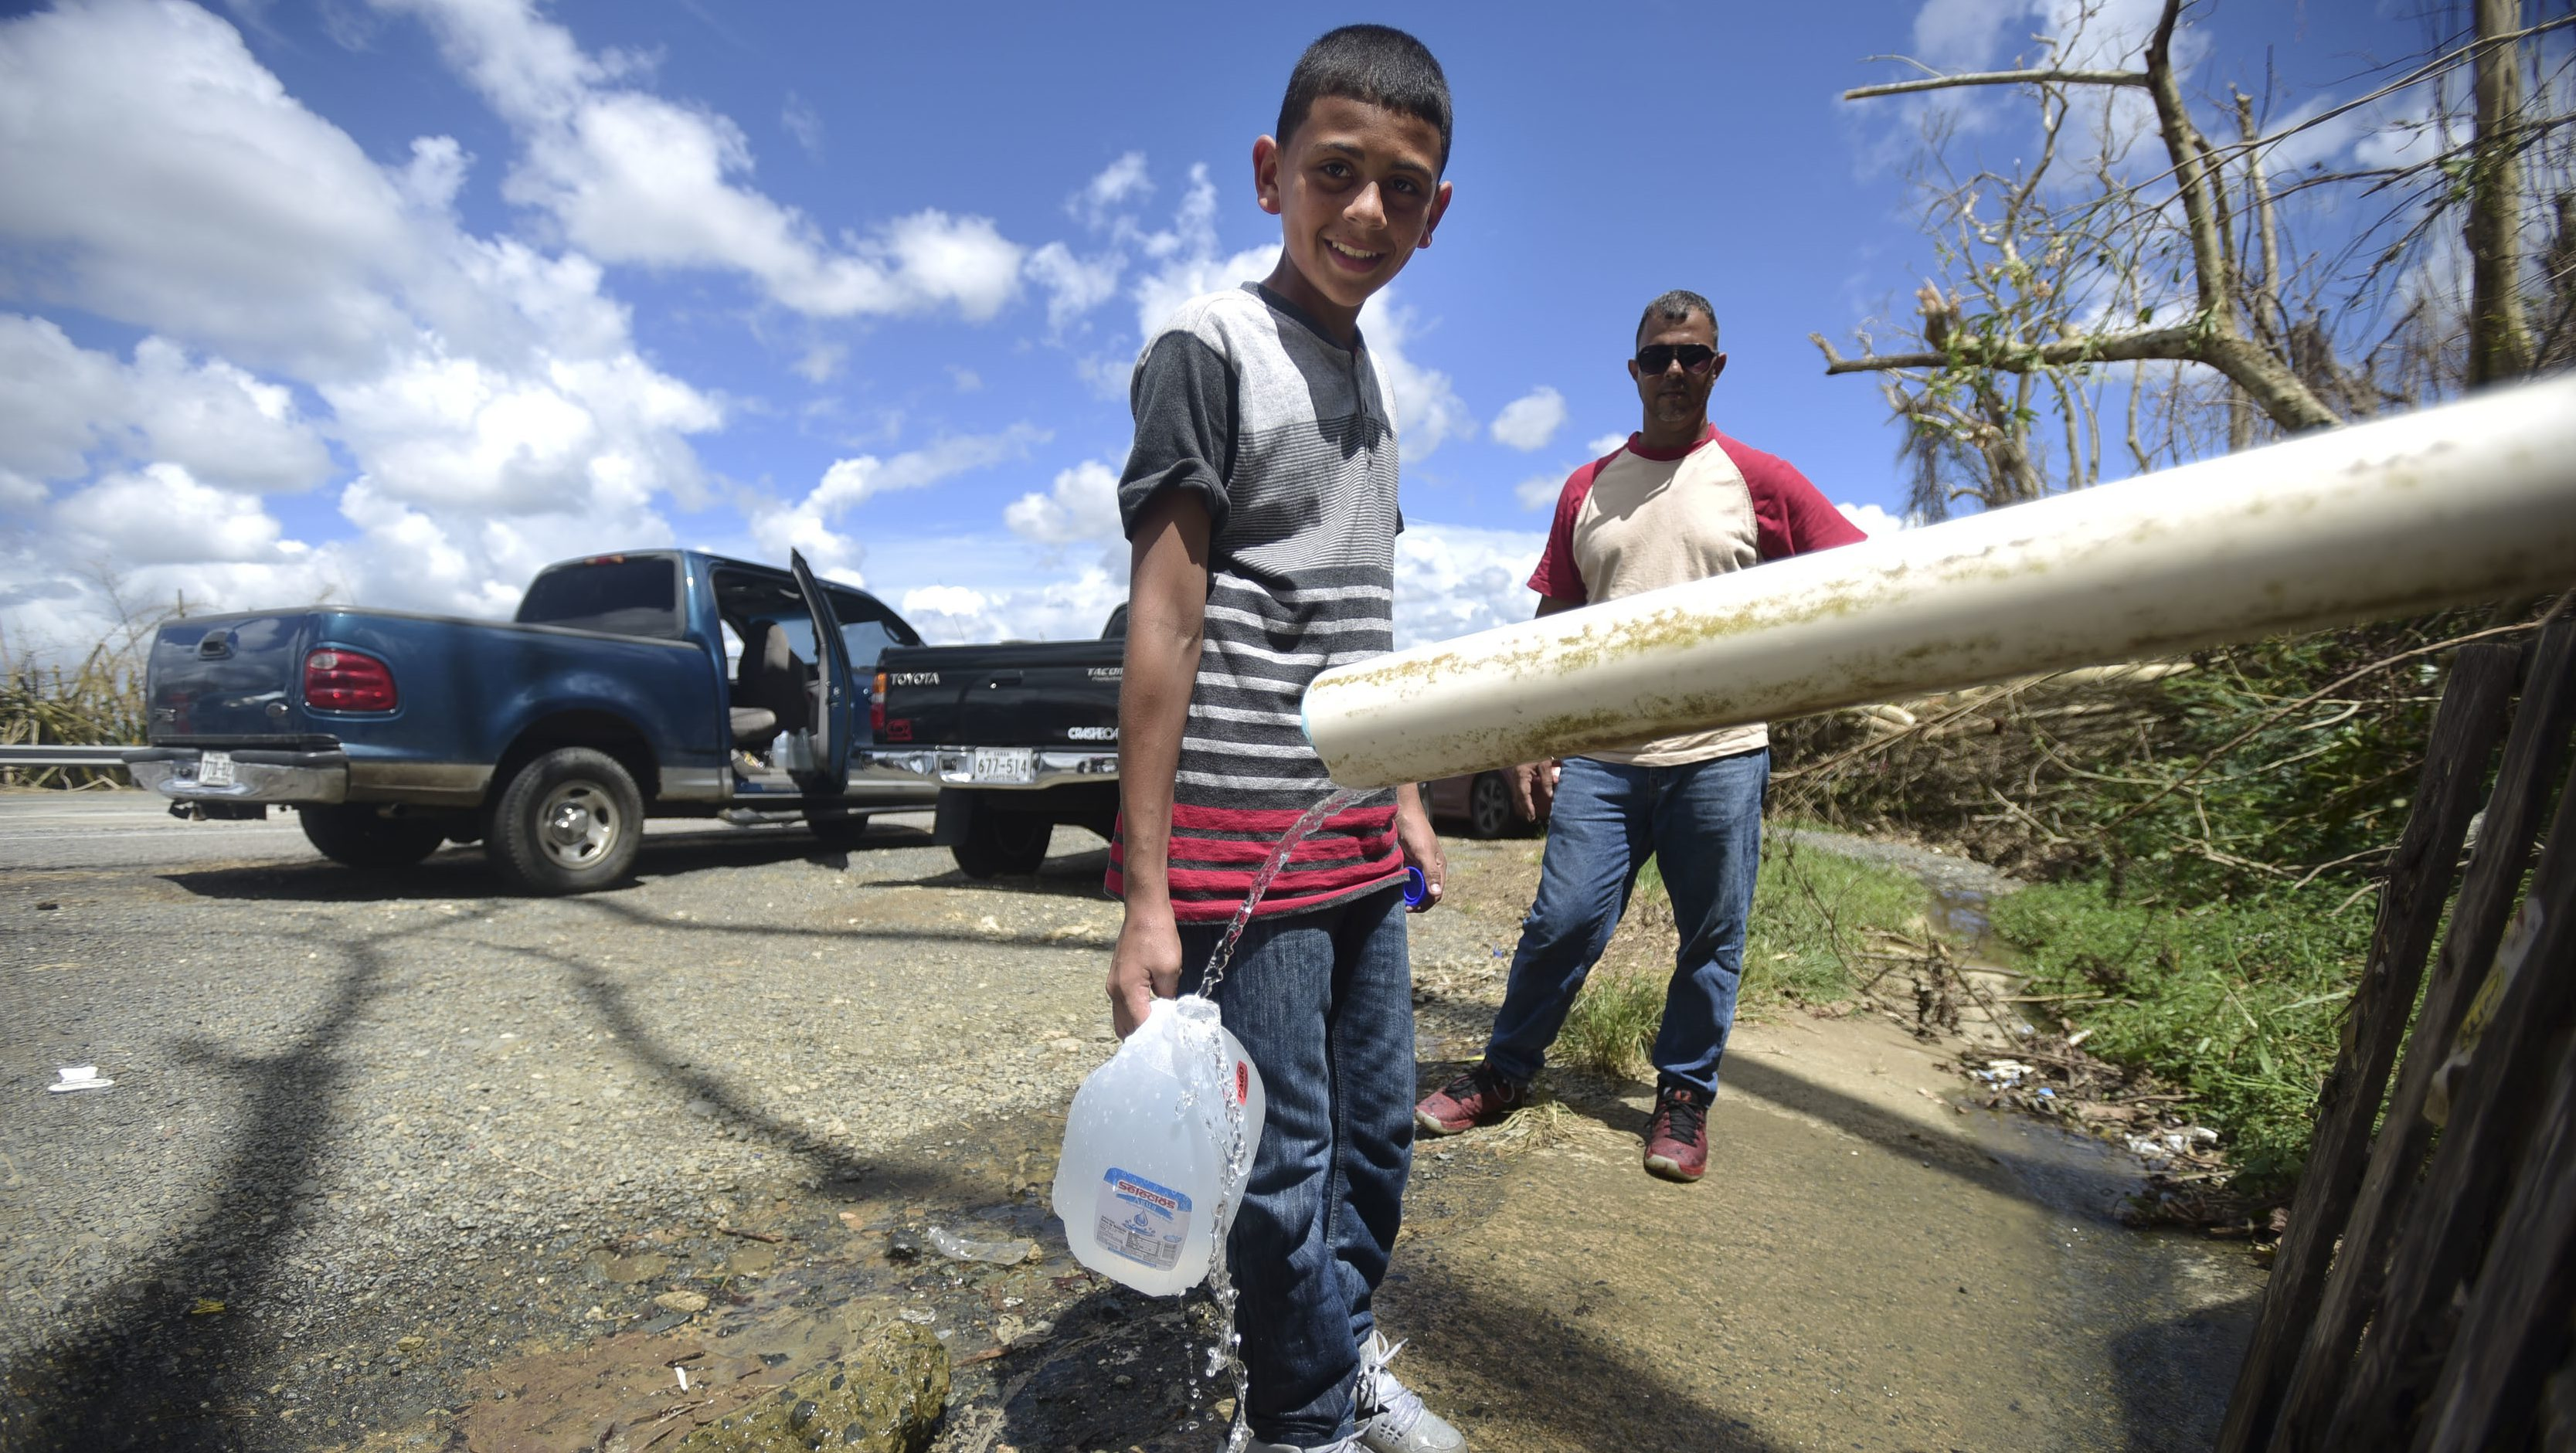 A large portion of the Puerto Rican population still can't access safe drinking water, so they're turning to other means.